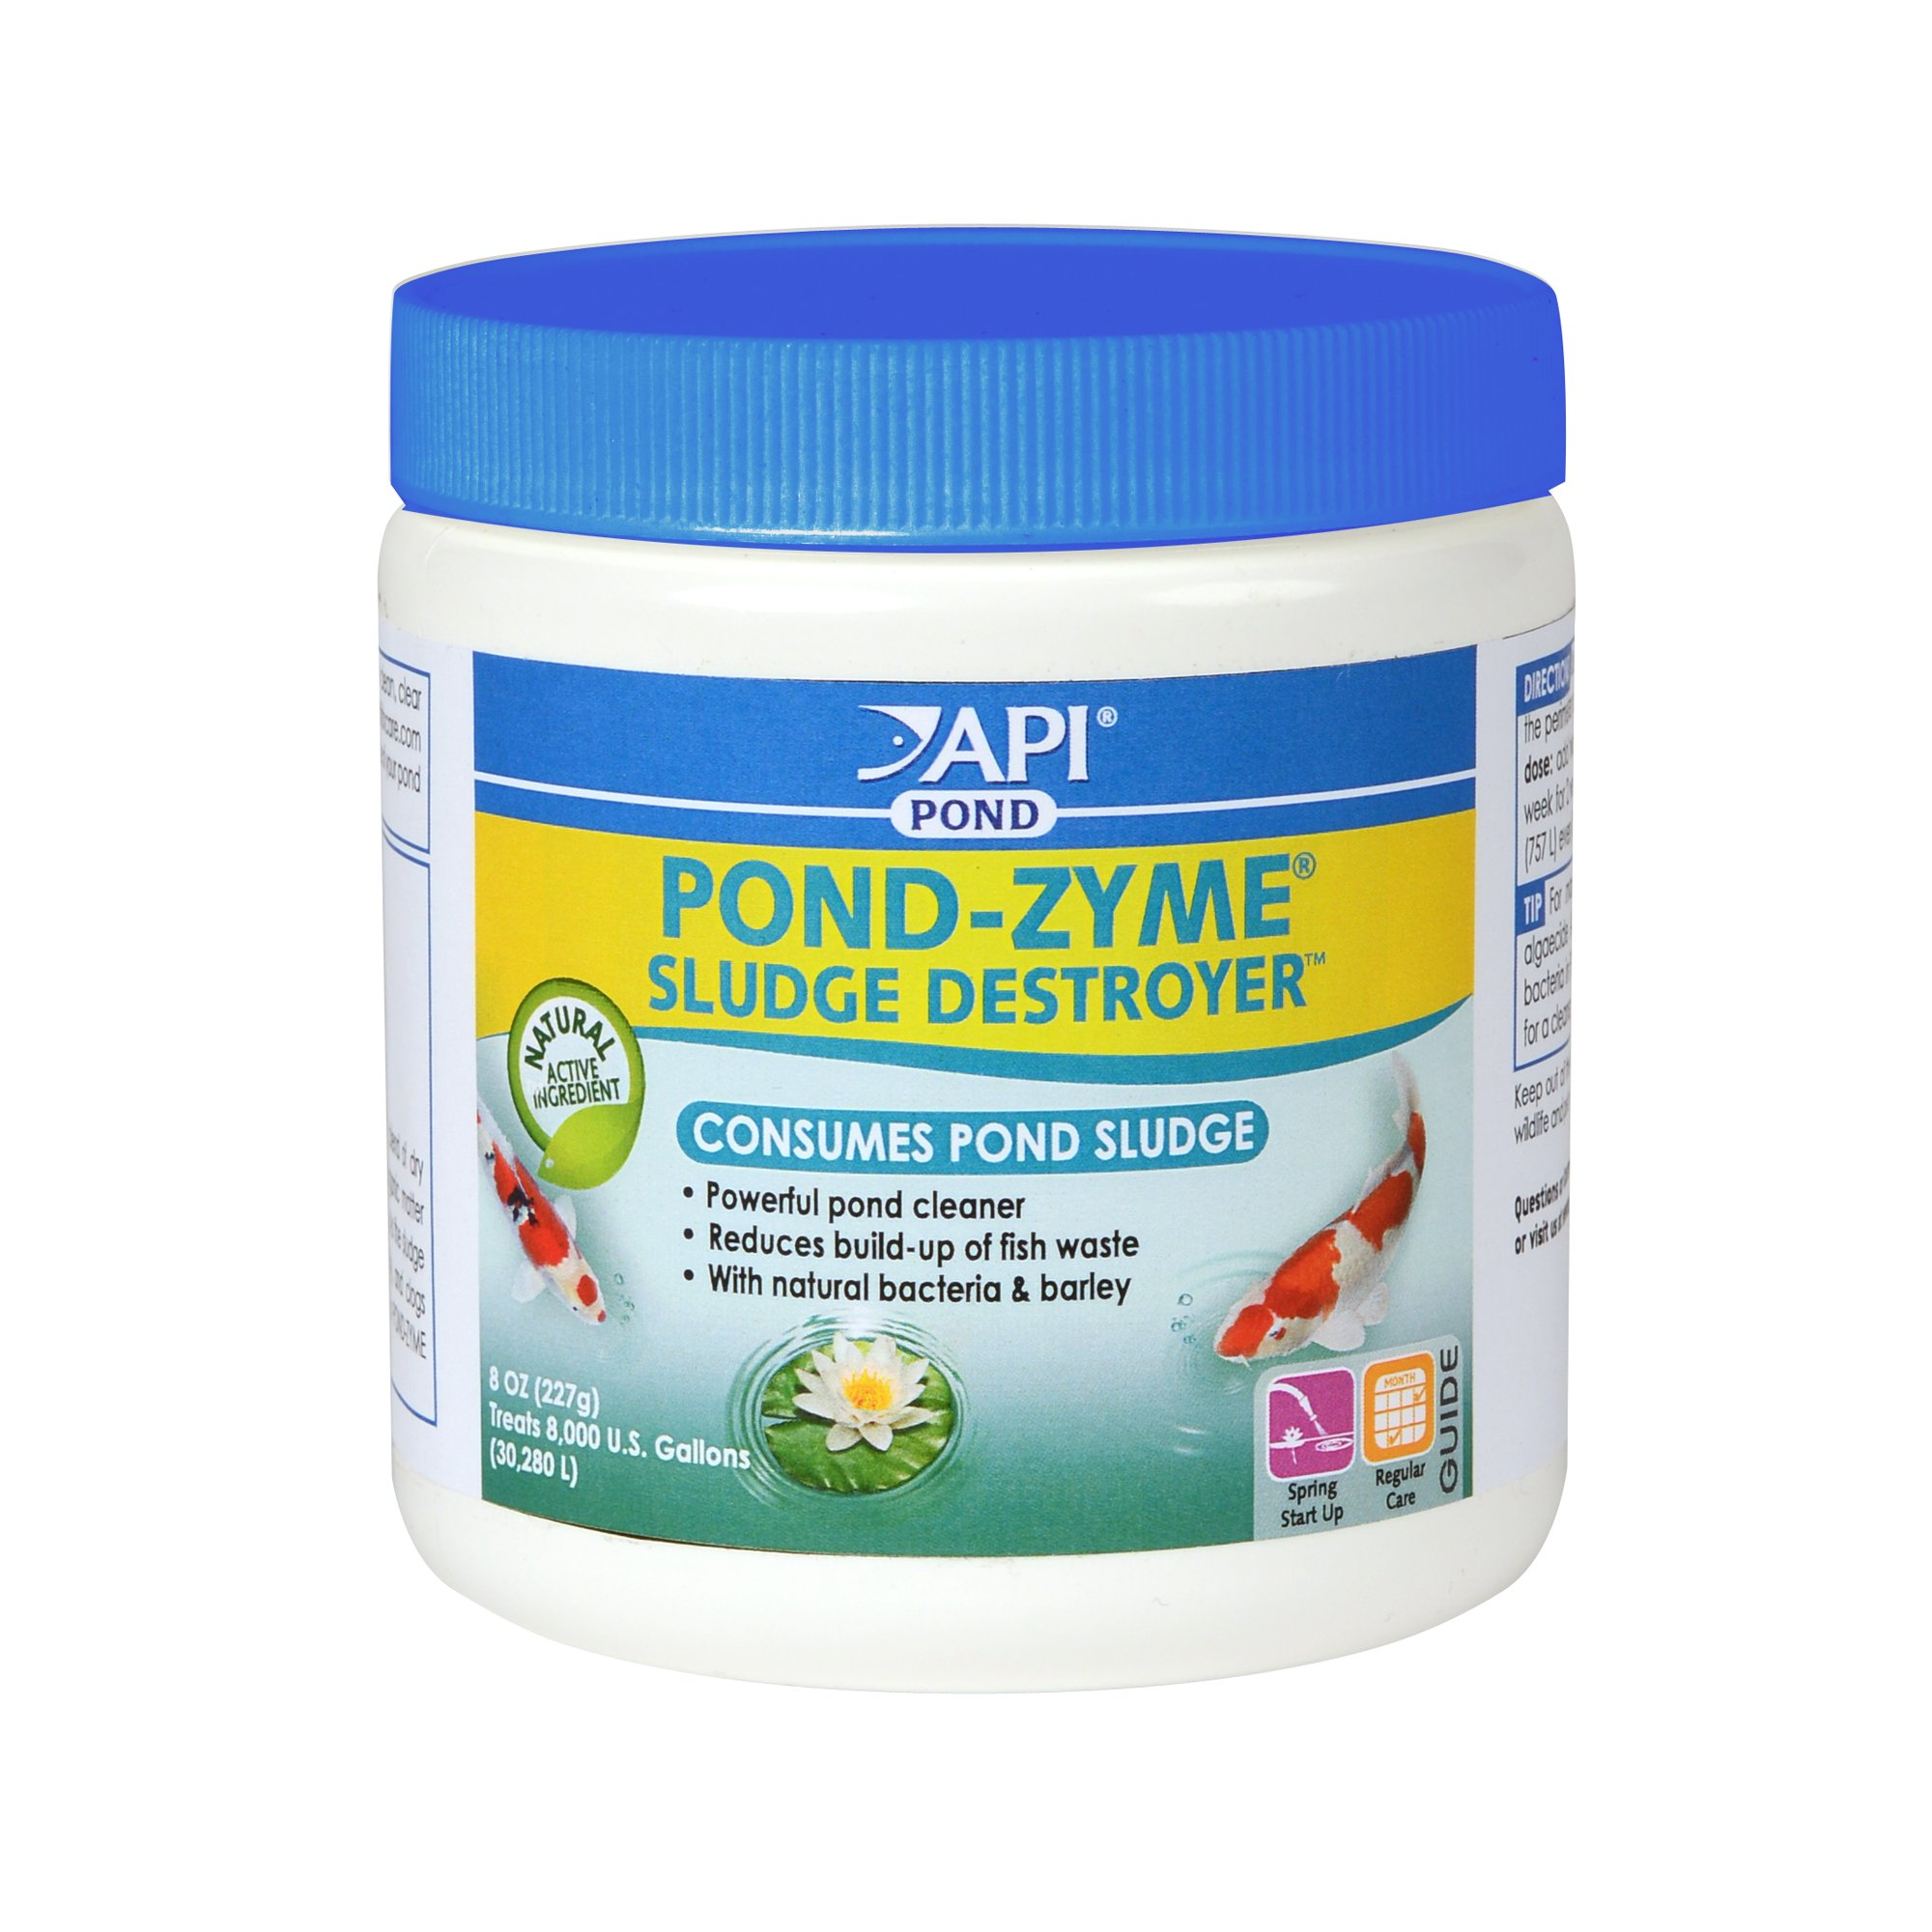 API PondCare Pond-Zyme Sludge Destroyer